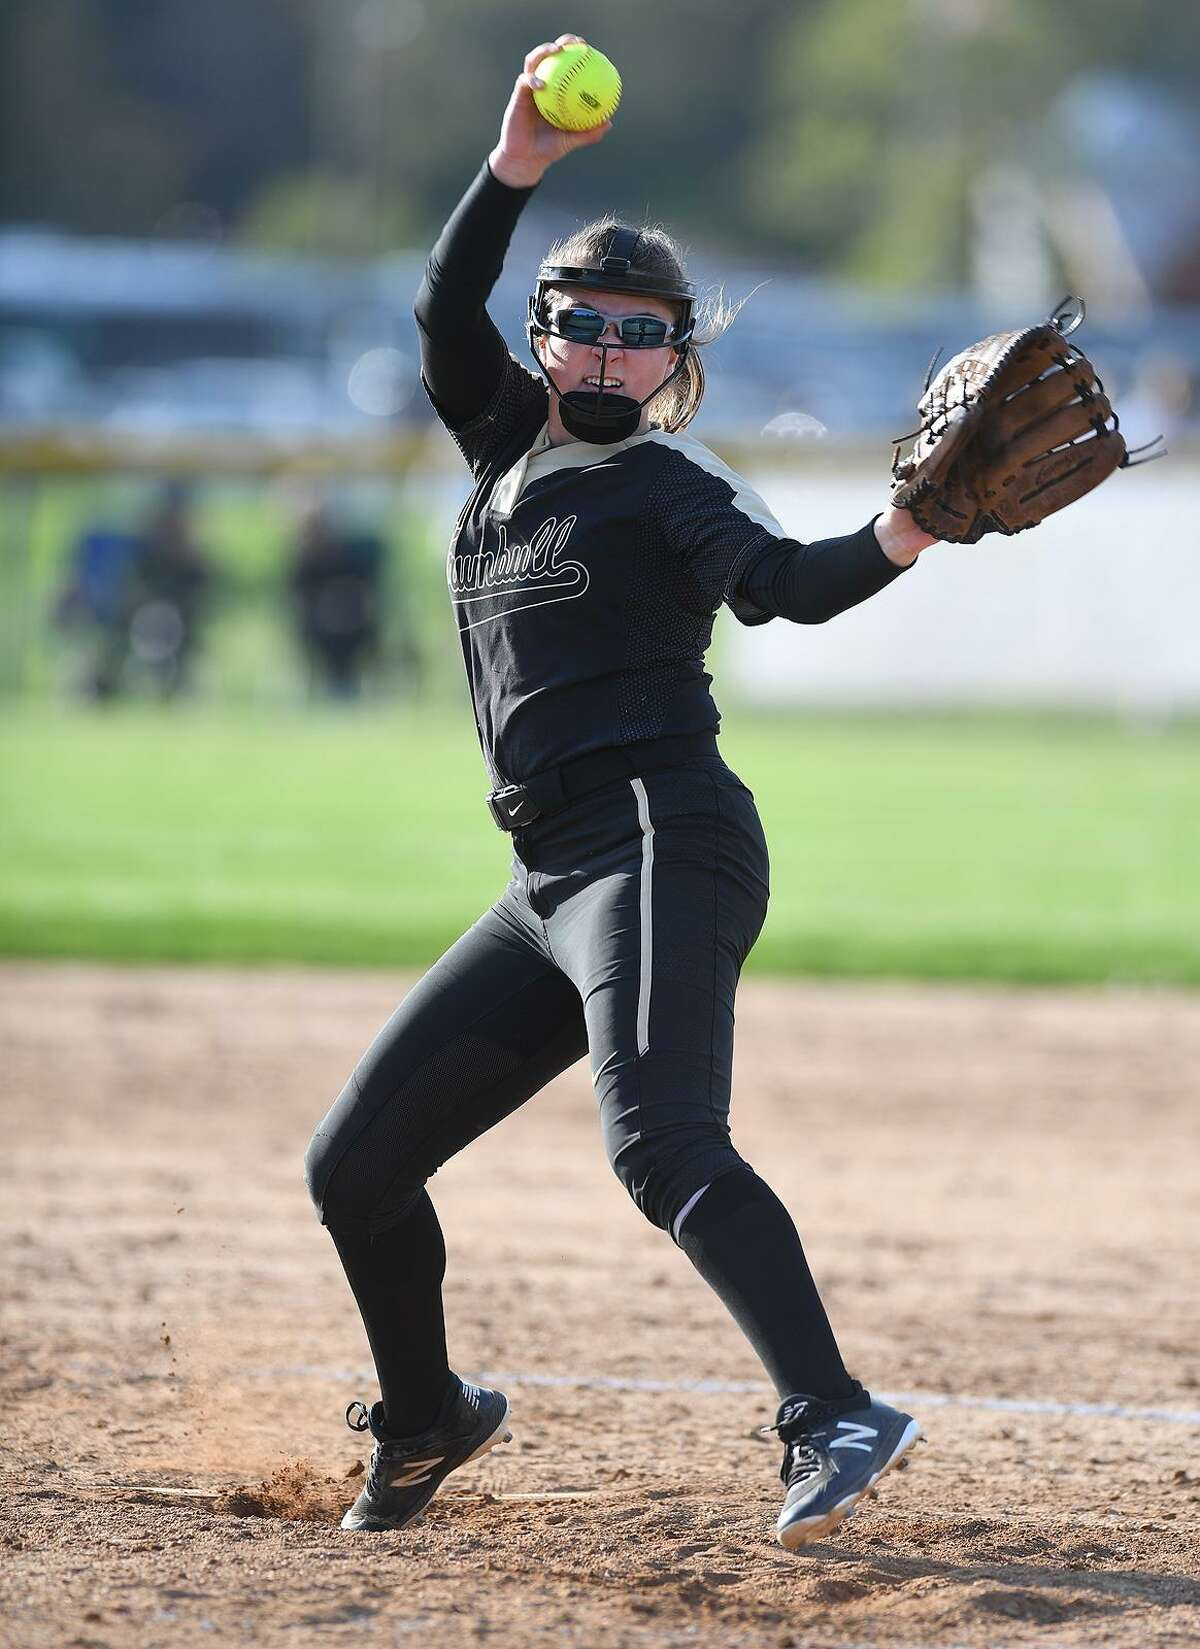 Trumbull hurler Emily Gell delivers to the plate during their softball game with Fairfield Warde at Trumbull High School in Trumbull, Conn. on Tuesday, May 7, 2019.